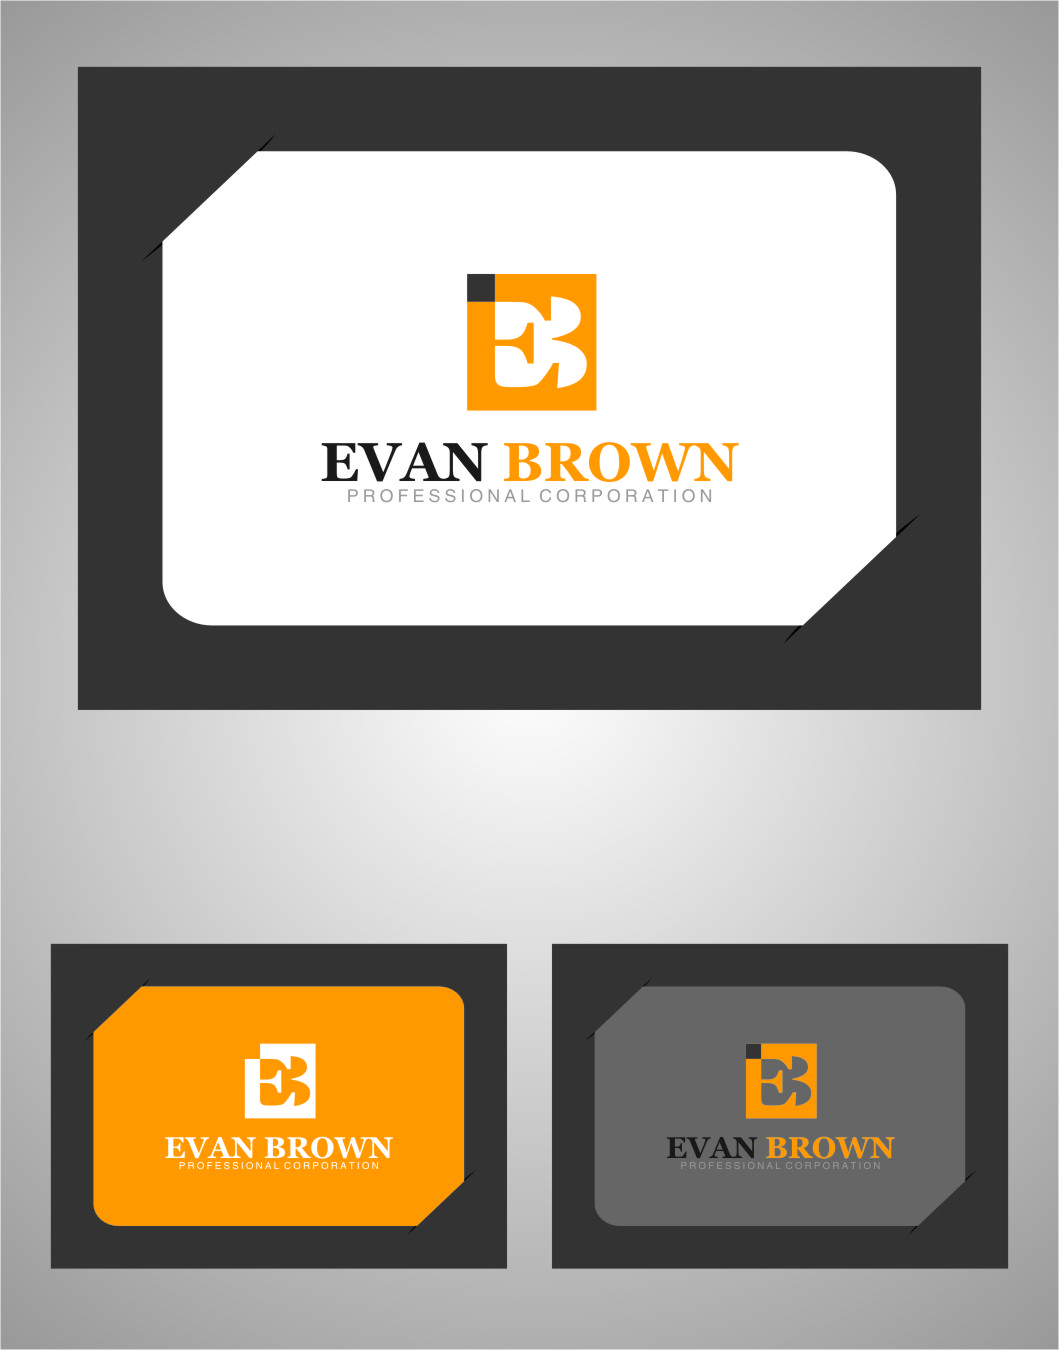 Logo Design by Ngepet_art - Entry No. 119 in the Logo Design Contest Inspiring Logo Design for Evan Brown Professional Corporation.